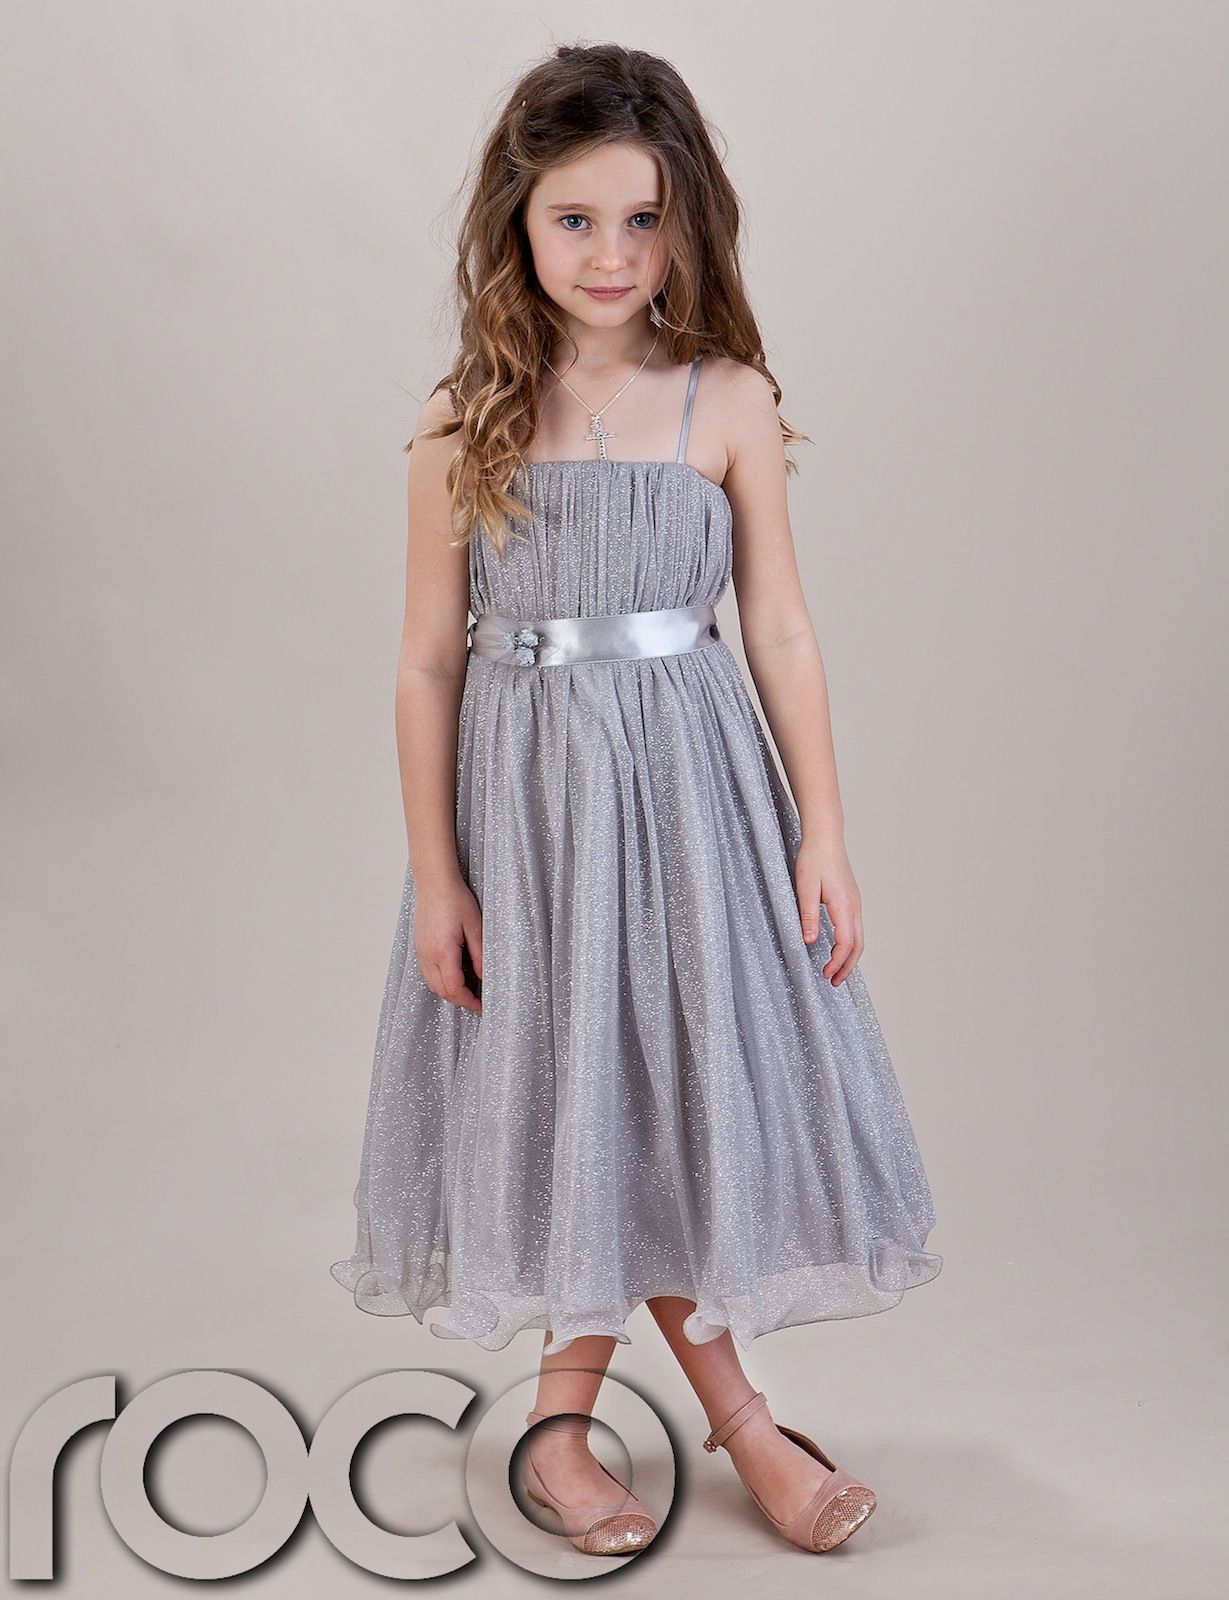 Details About Girls Silver Hoop Dress Bridesmaid Prom Wedding